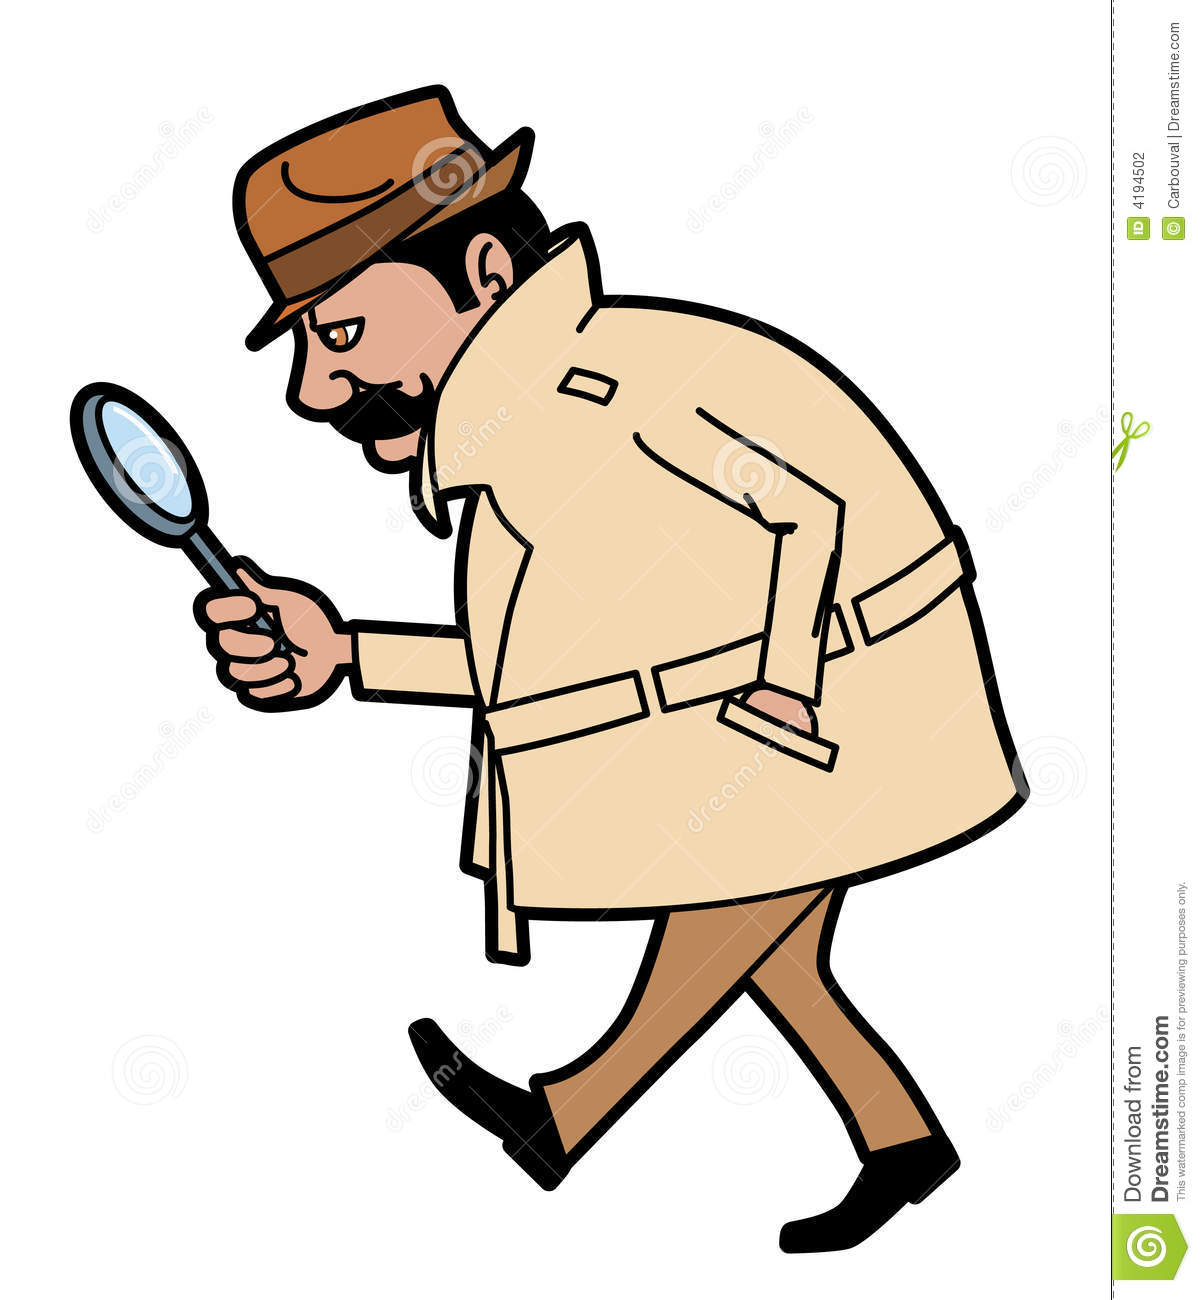 investigator looking up clues clipart panda free clipart images rh clipartpanda com Relax Clip Art Waiting Clip Art